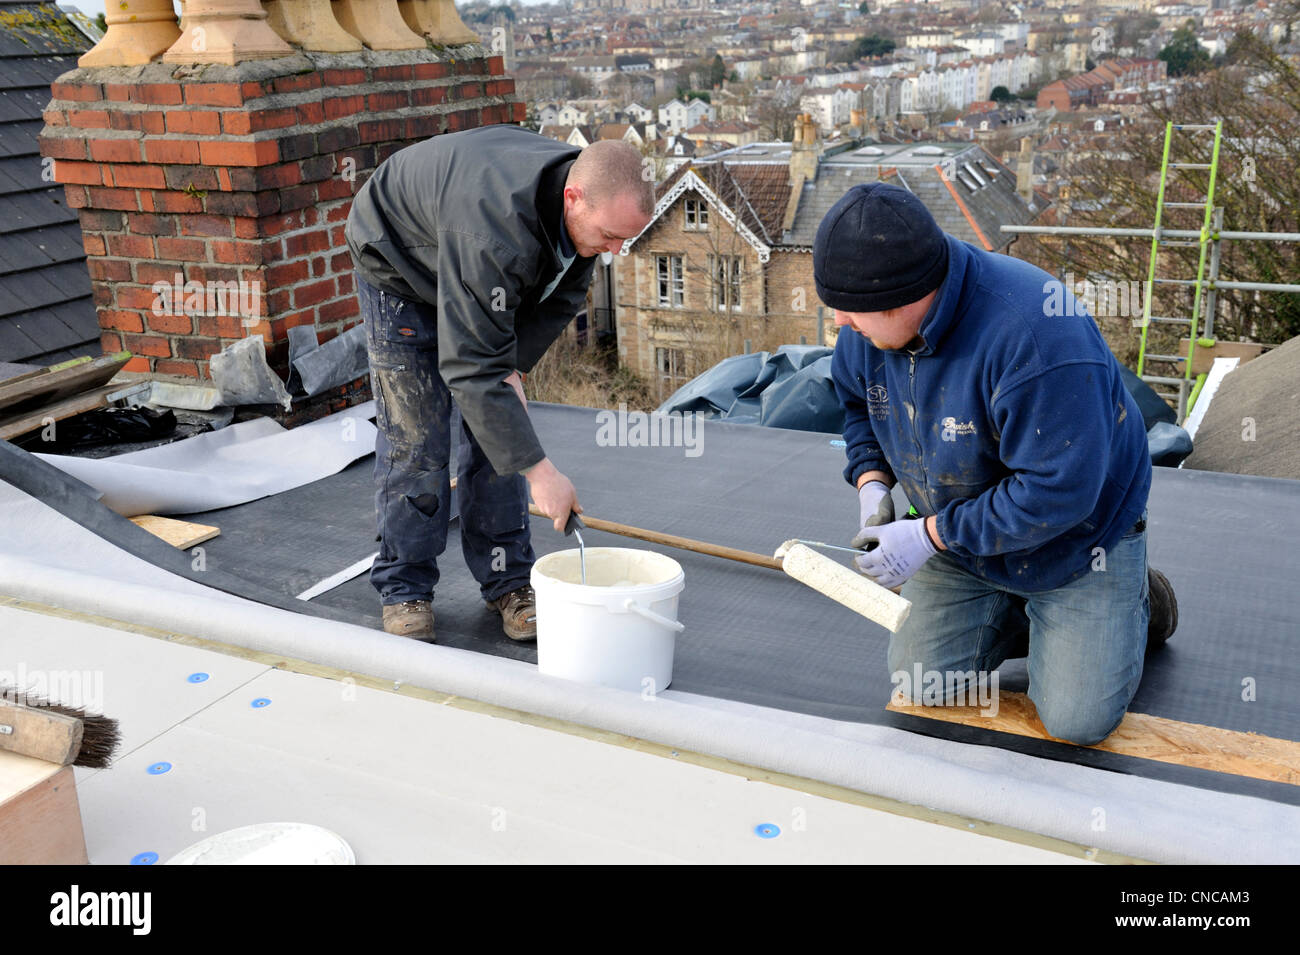 Roofers Spreading Adhesive On Insulation Board Of Flat Roof To Lay New EPDM  Rubber Membrane On House